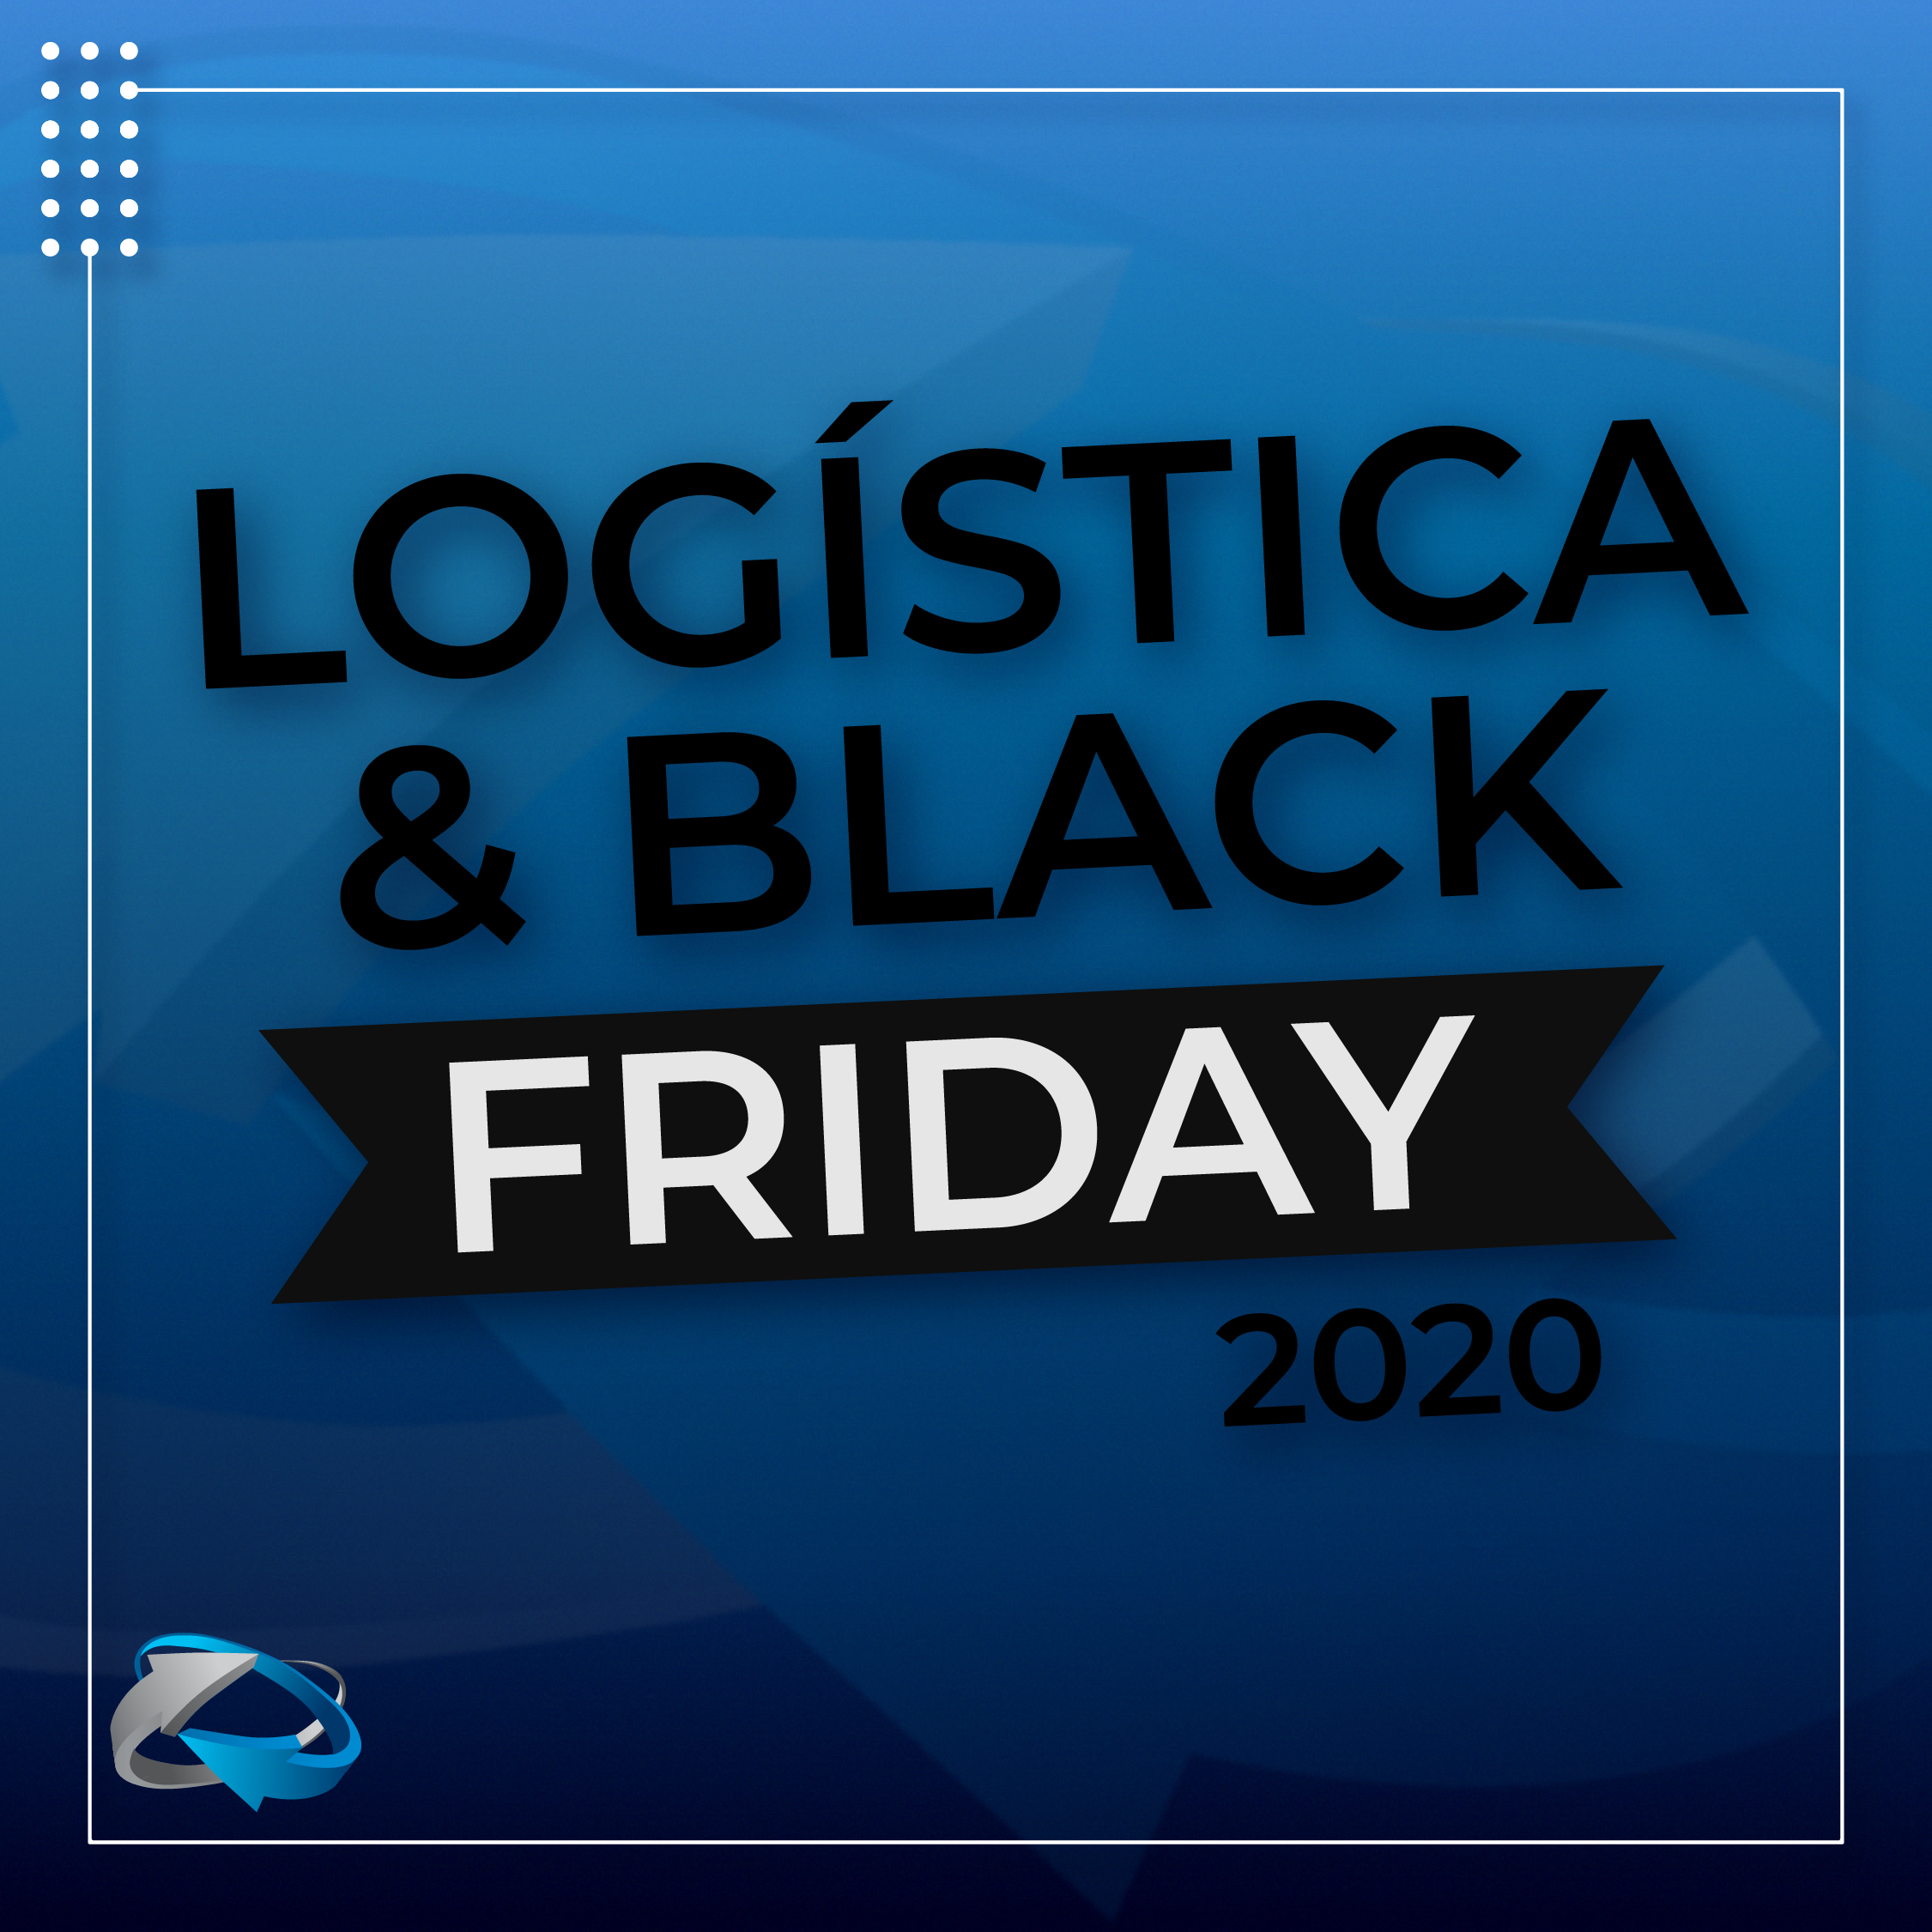 black friday e logistica 2020 agileprocess